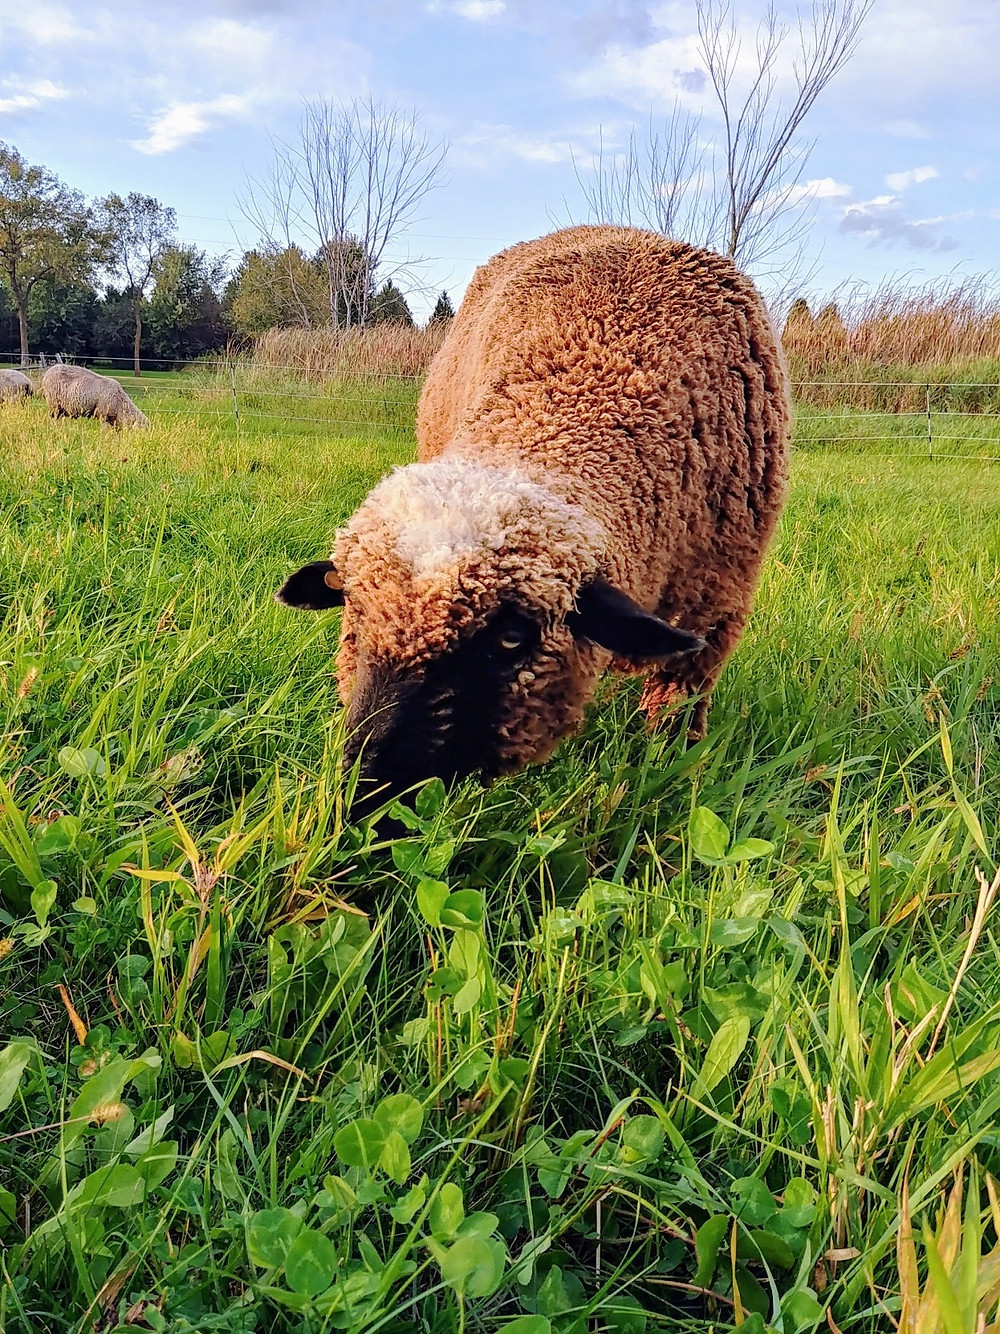 A fluffy brown sheep eating grass on a sunny day under blue skies. Photo Credit: Dresow Family Farm